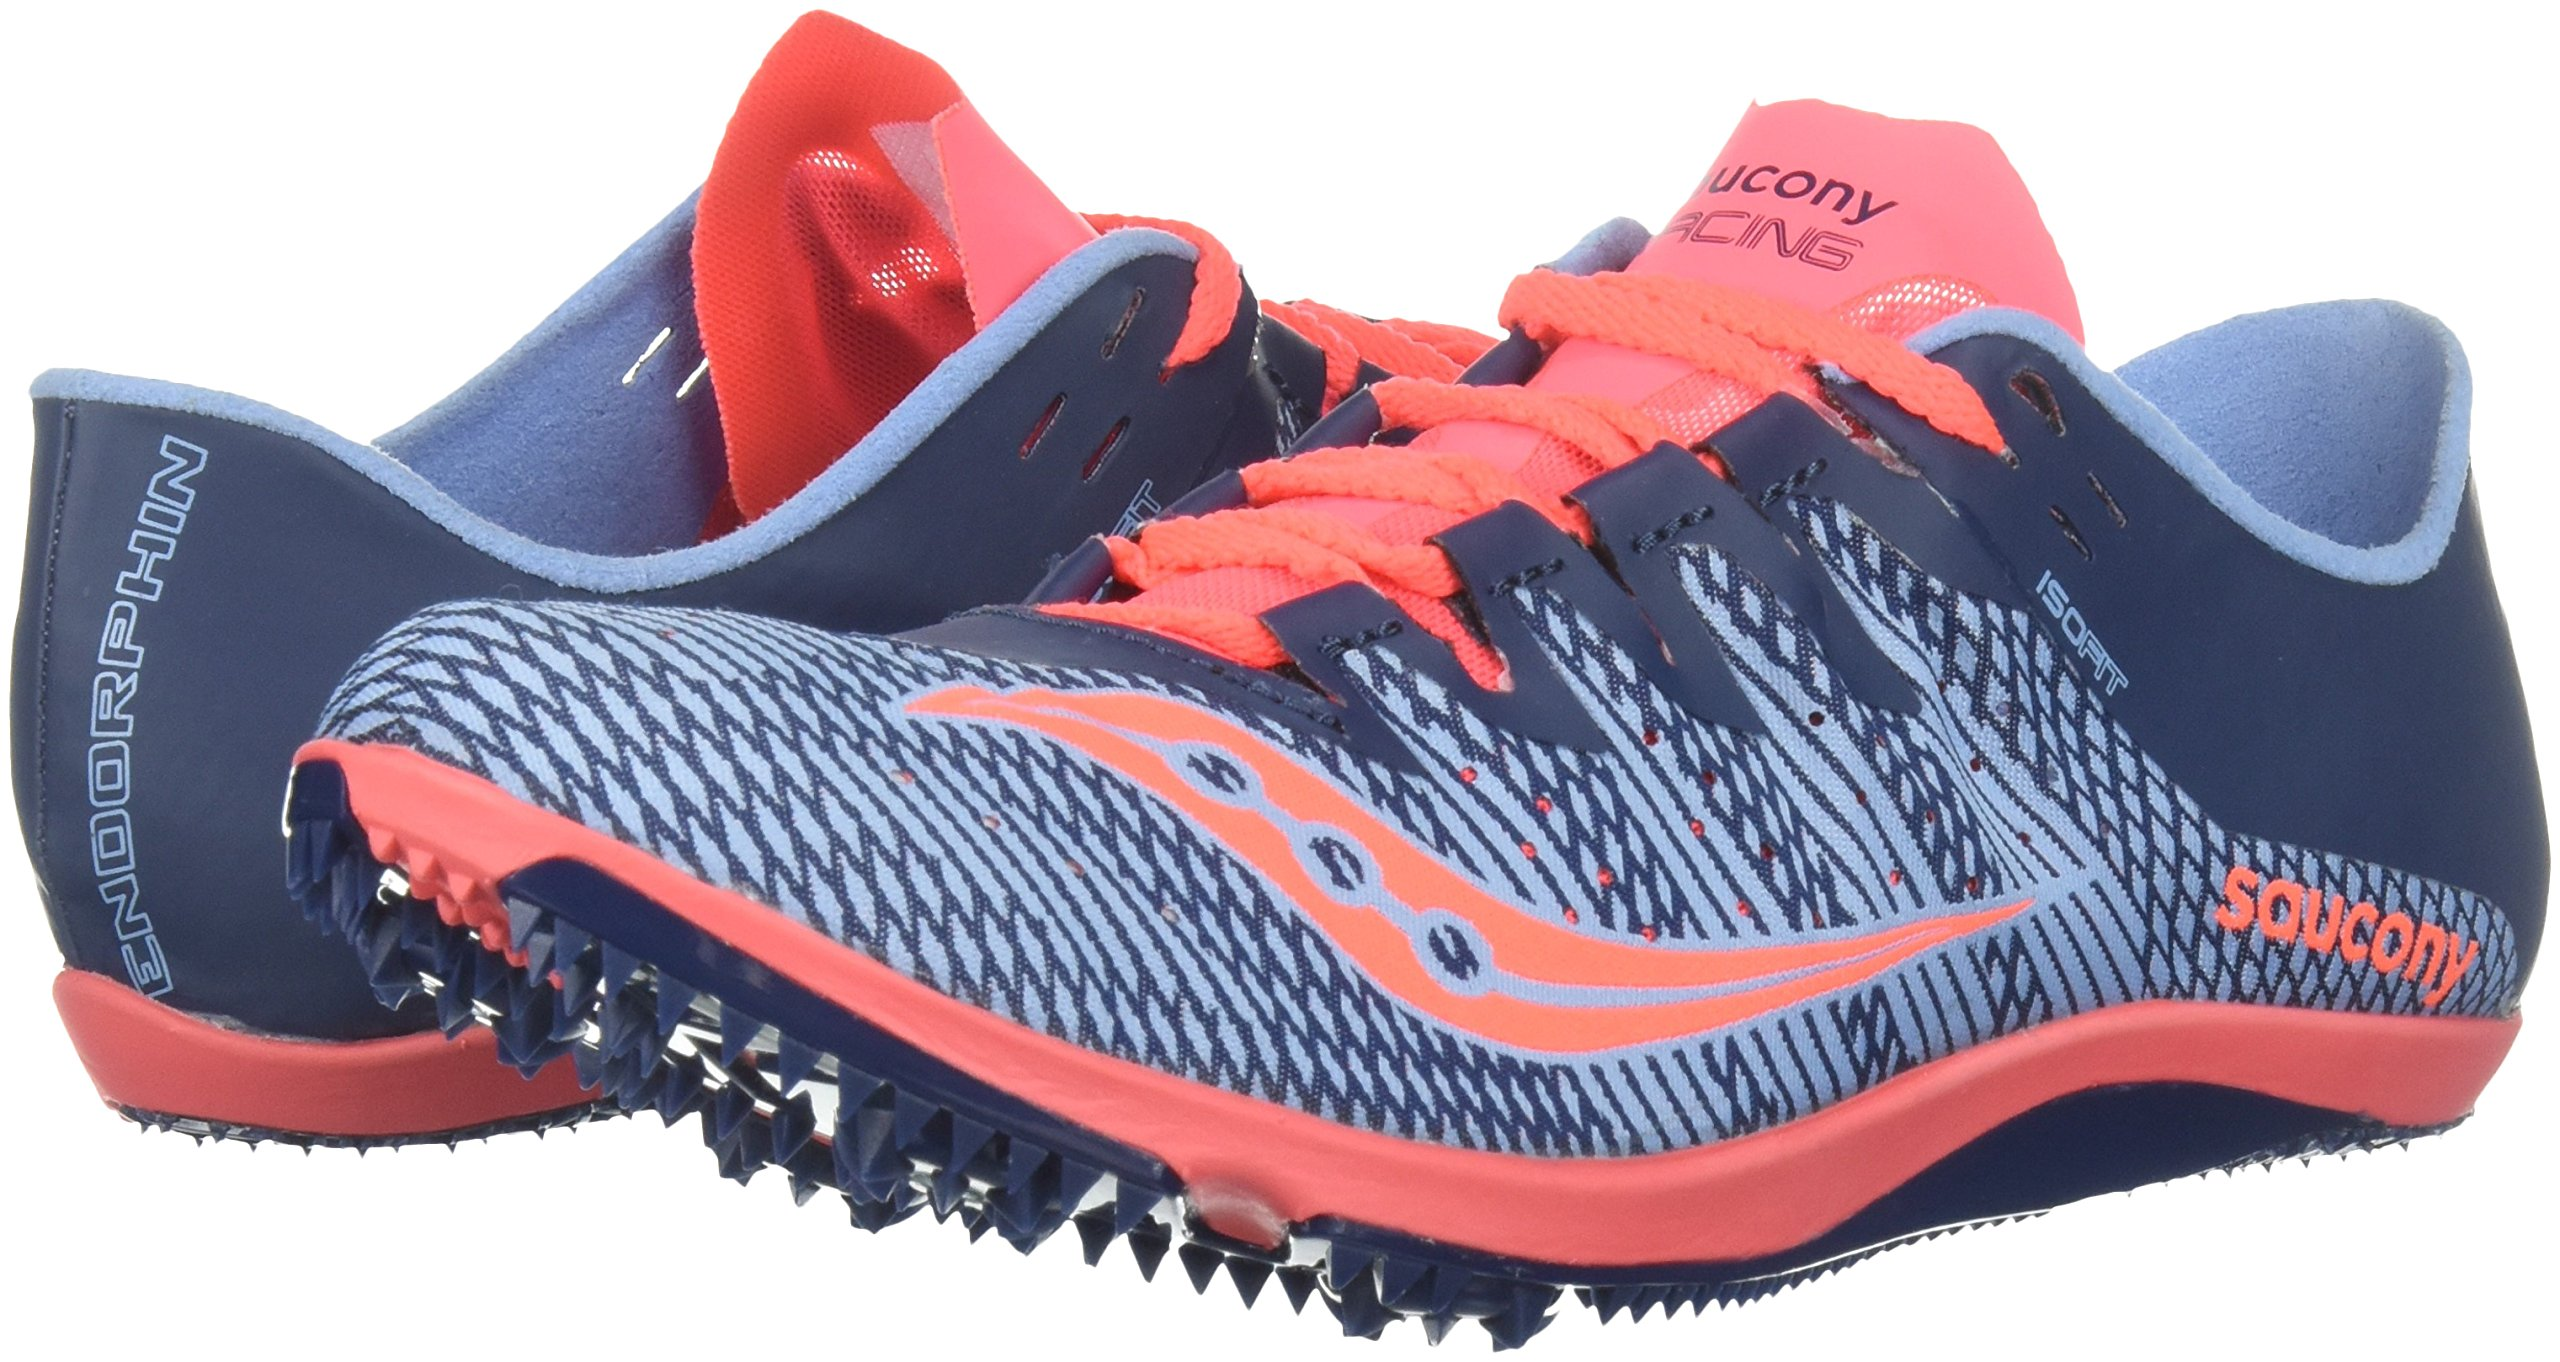 8140AtE1AOL - Saucony Endorphin 2 Women's Running Spikes - SS19